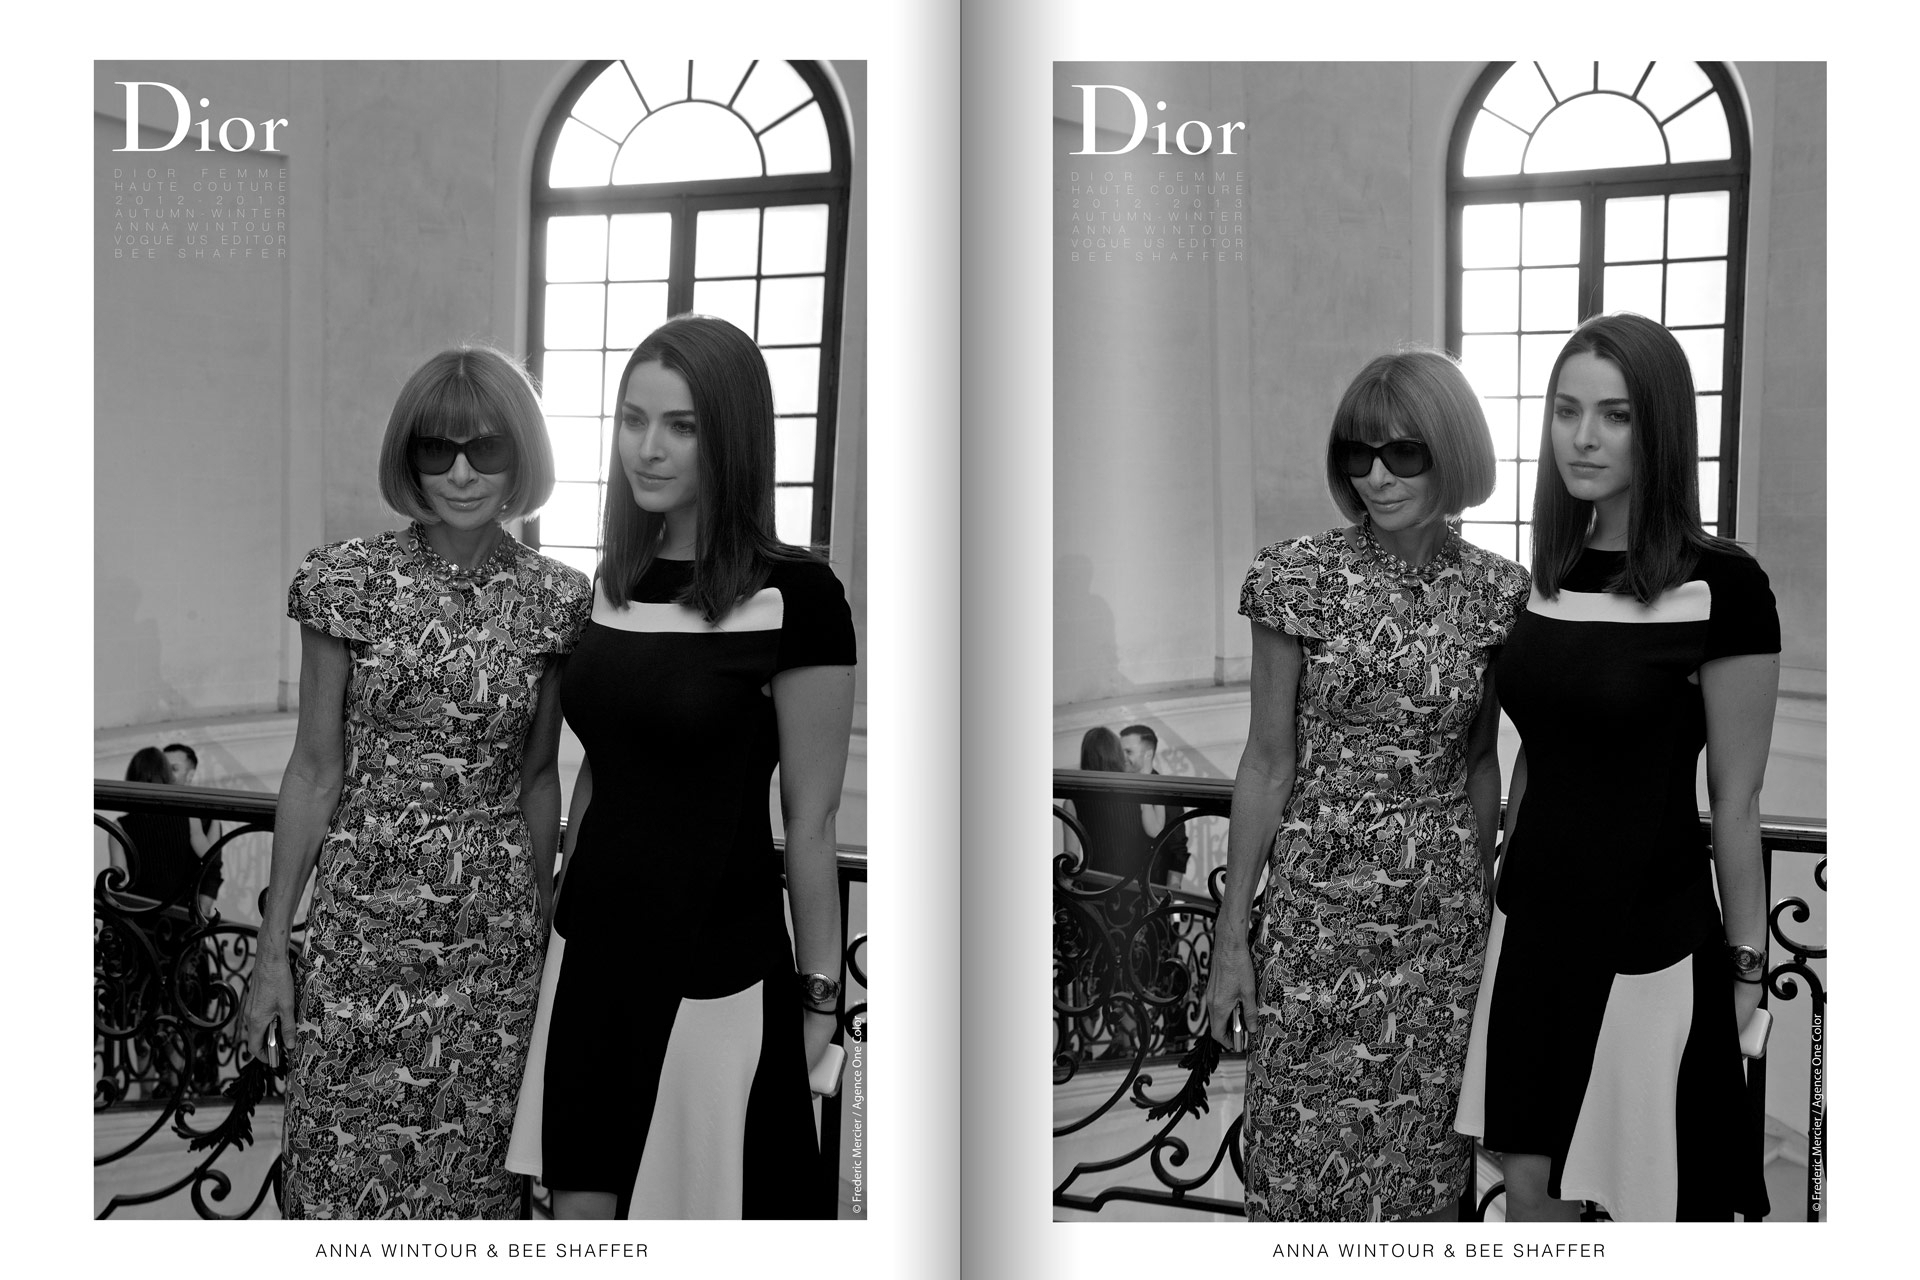 frederic mercier fashion photographer one color portraits people vogue anna wintour and bee shaffer for dior